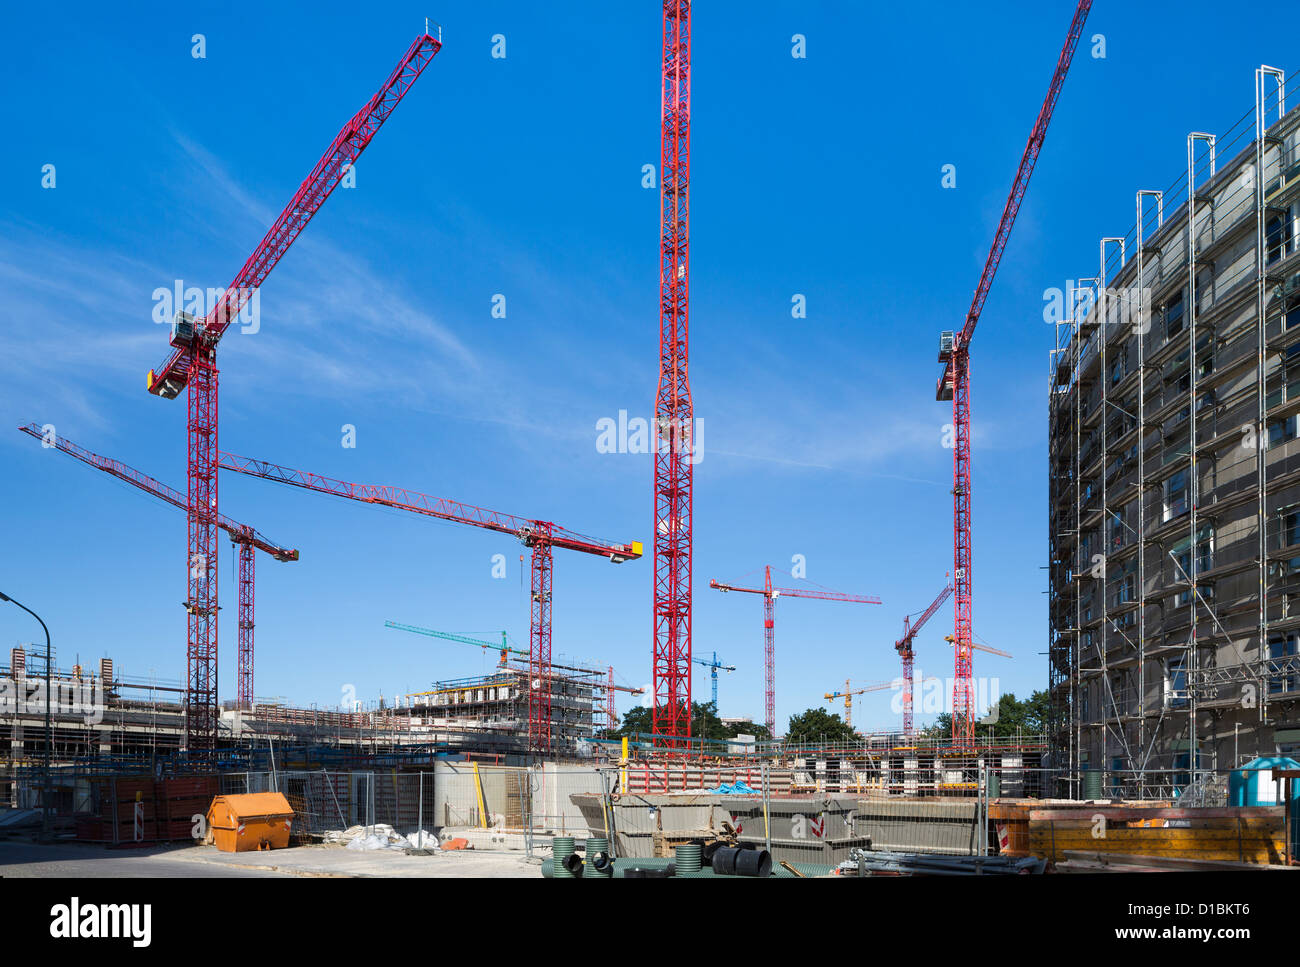 Cranes on a construction site - Stock Image